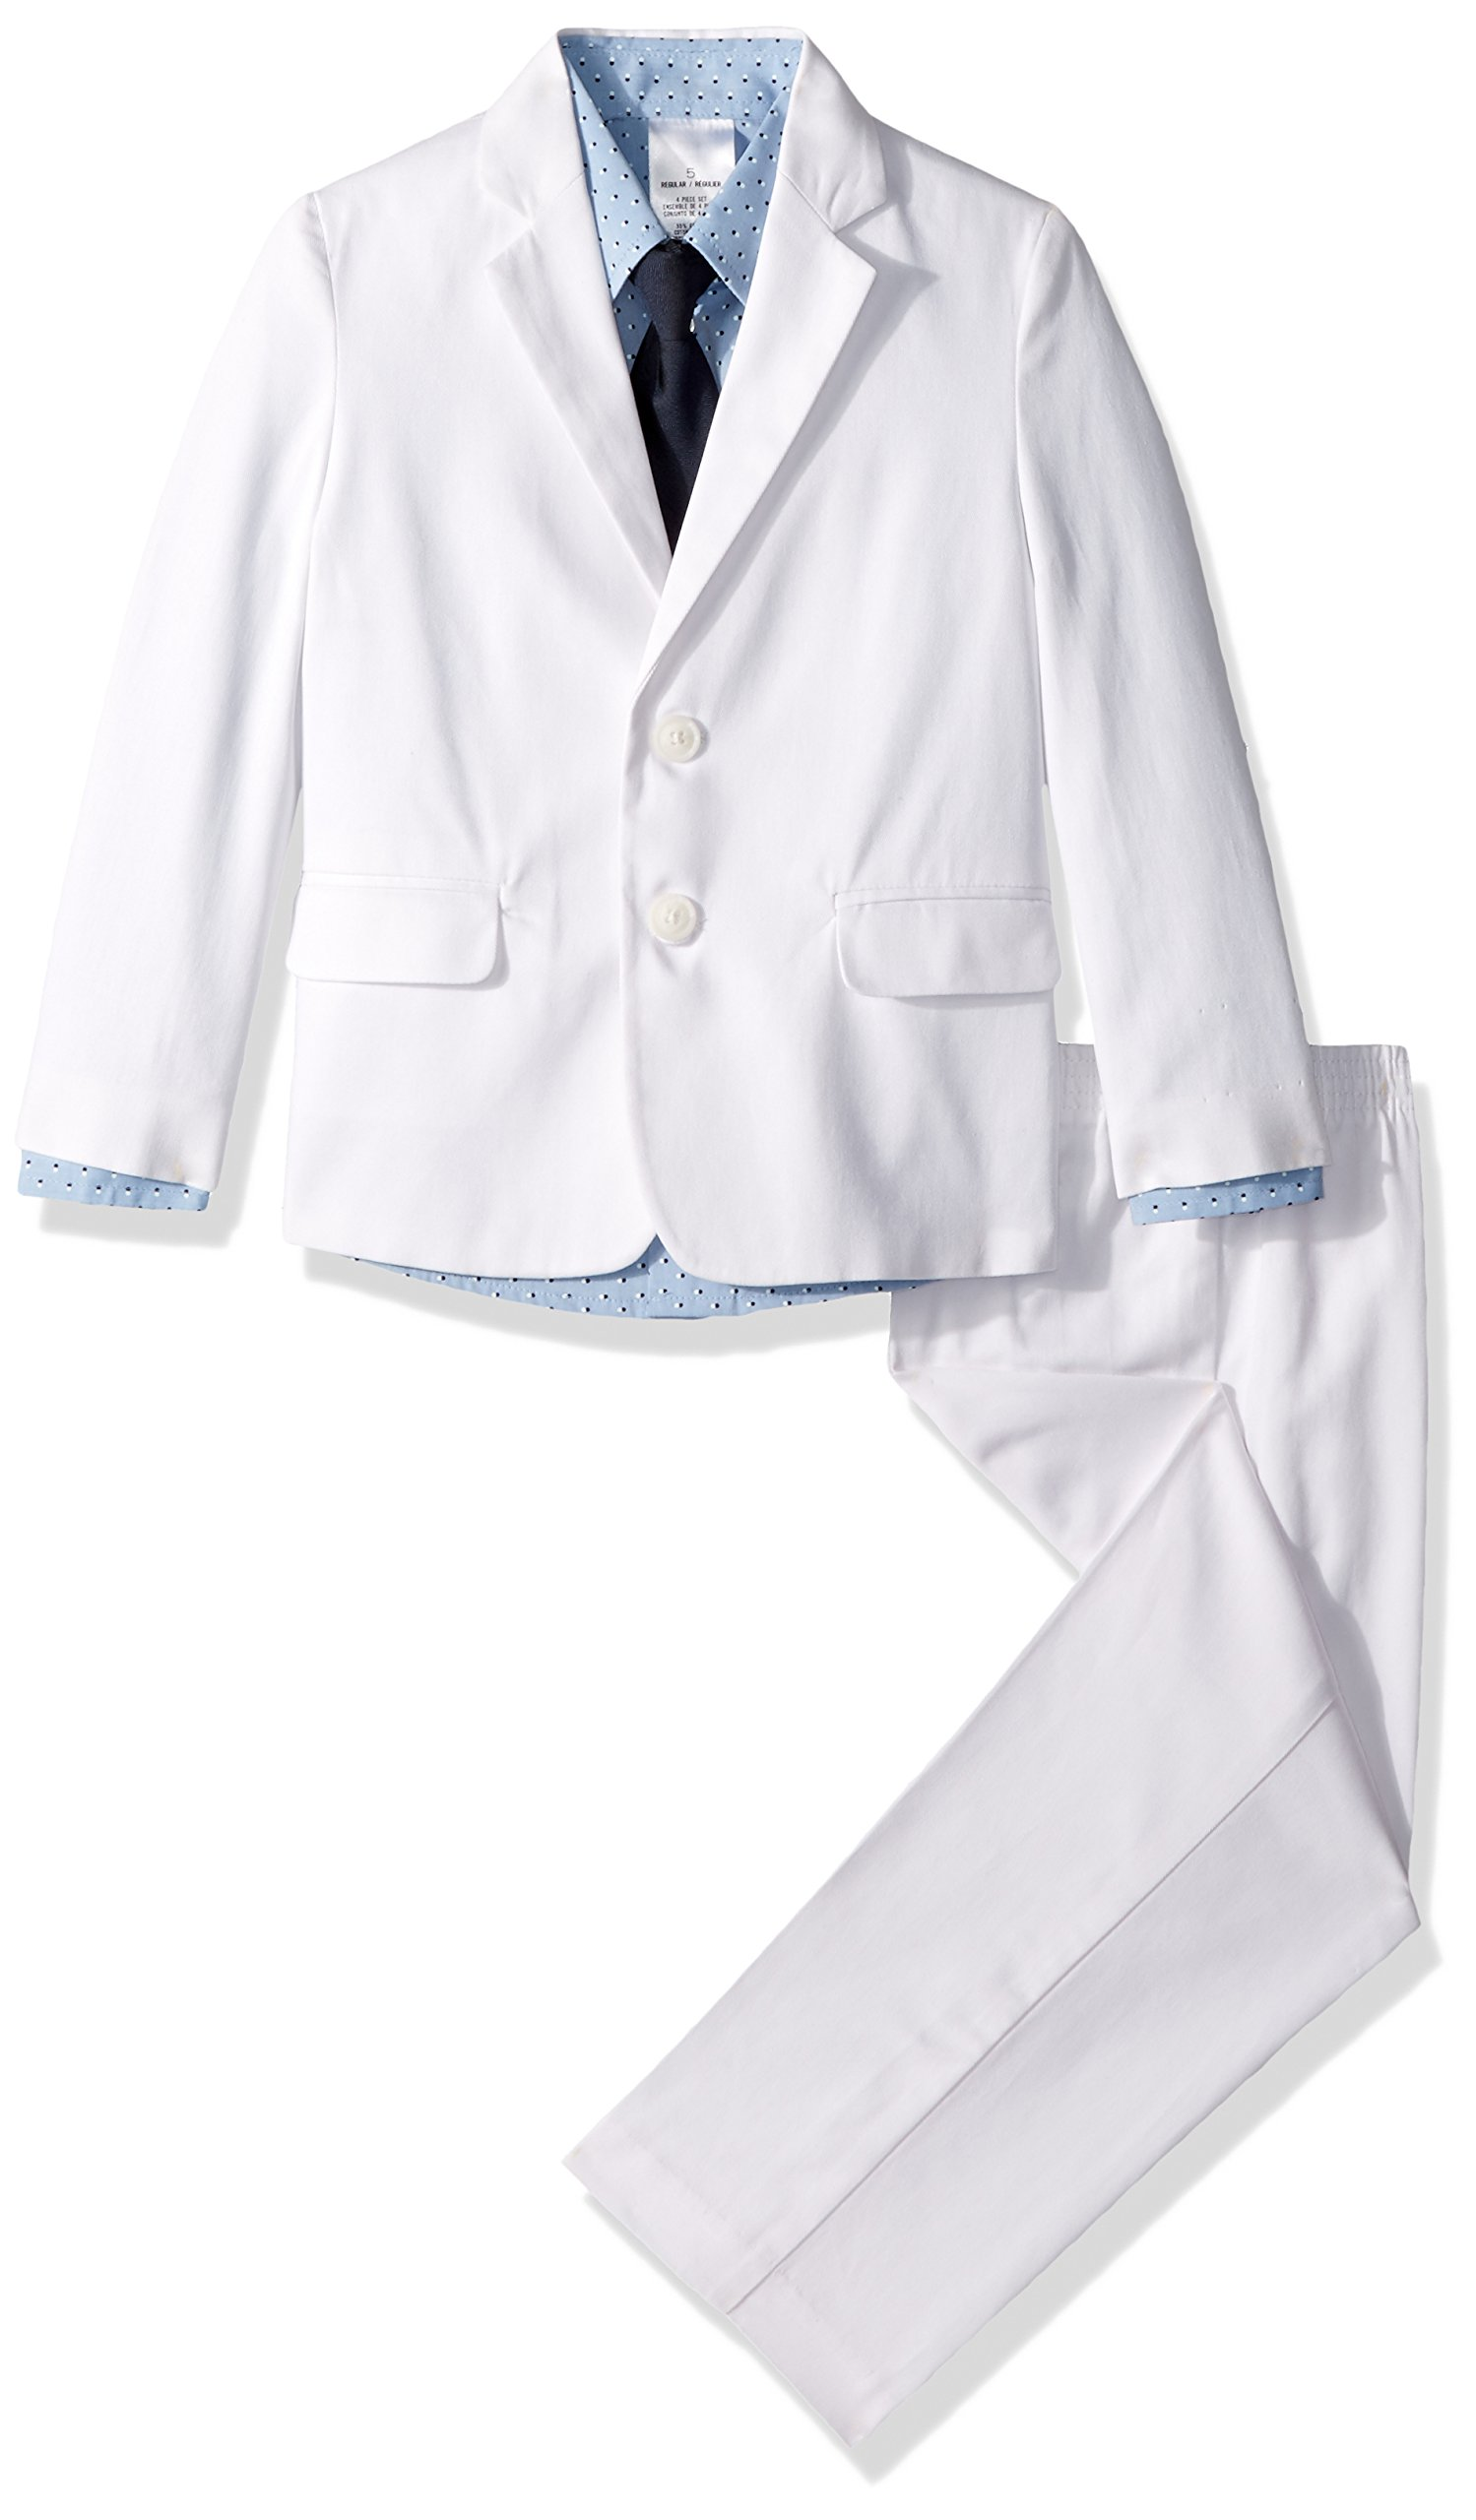 Nautica Boys' 4-Piece Suit Set with Dress Shirt, Tie, Jacket, and Pants, Twill White/Blue, 5